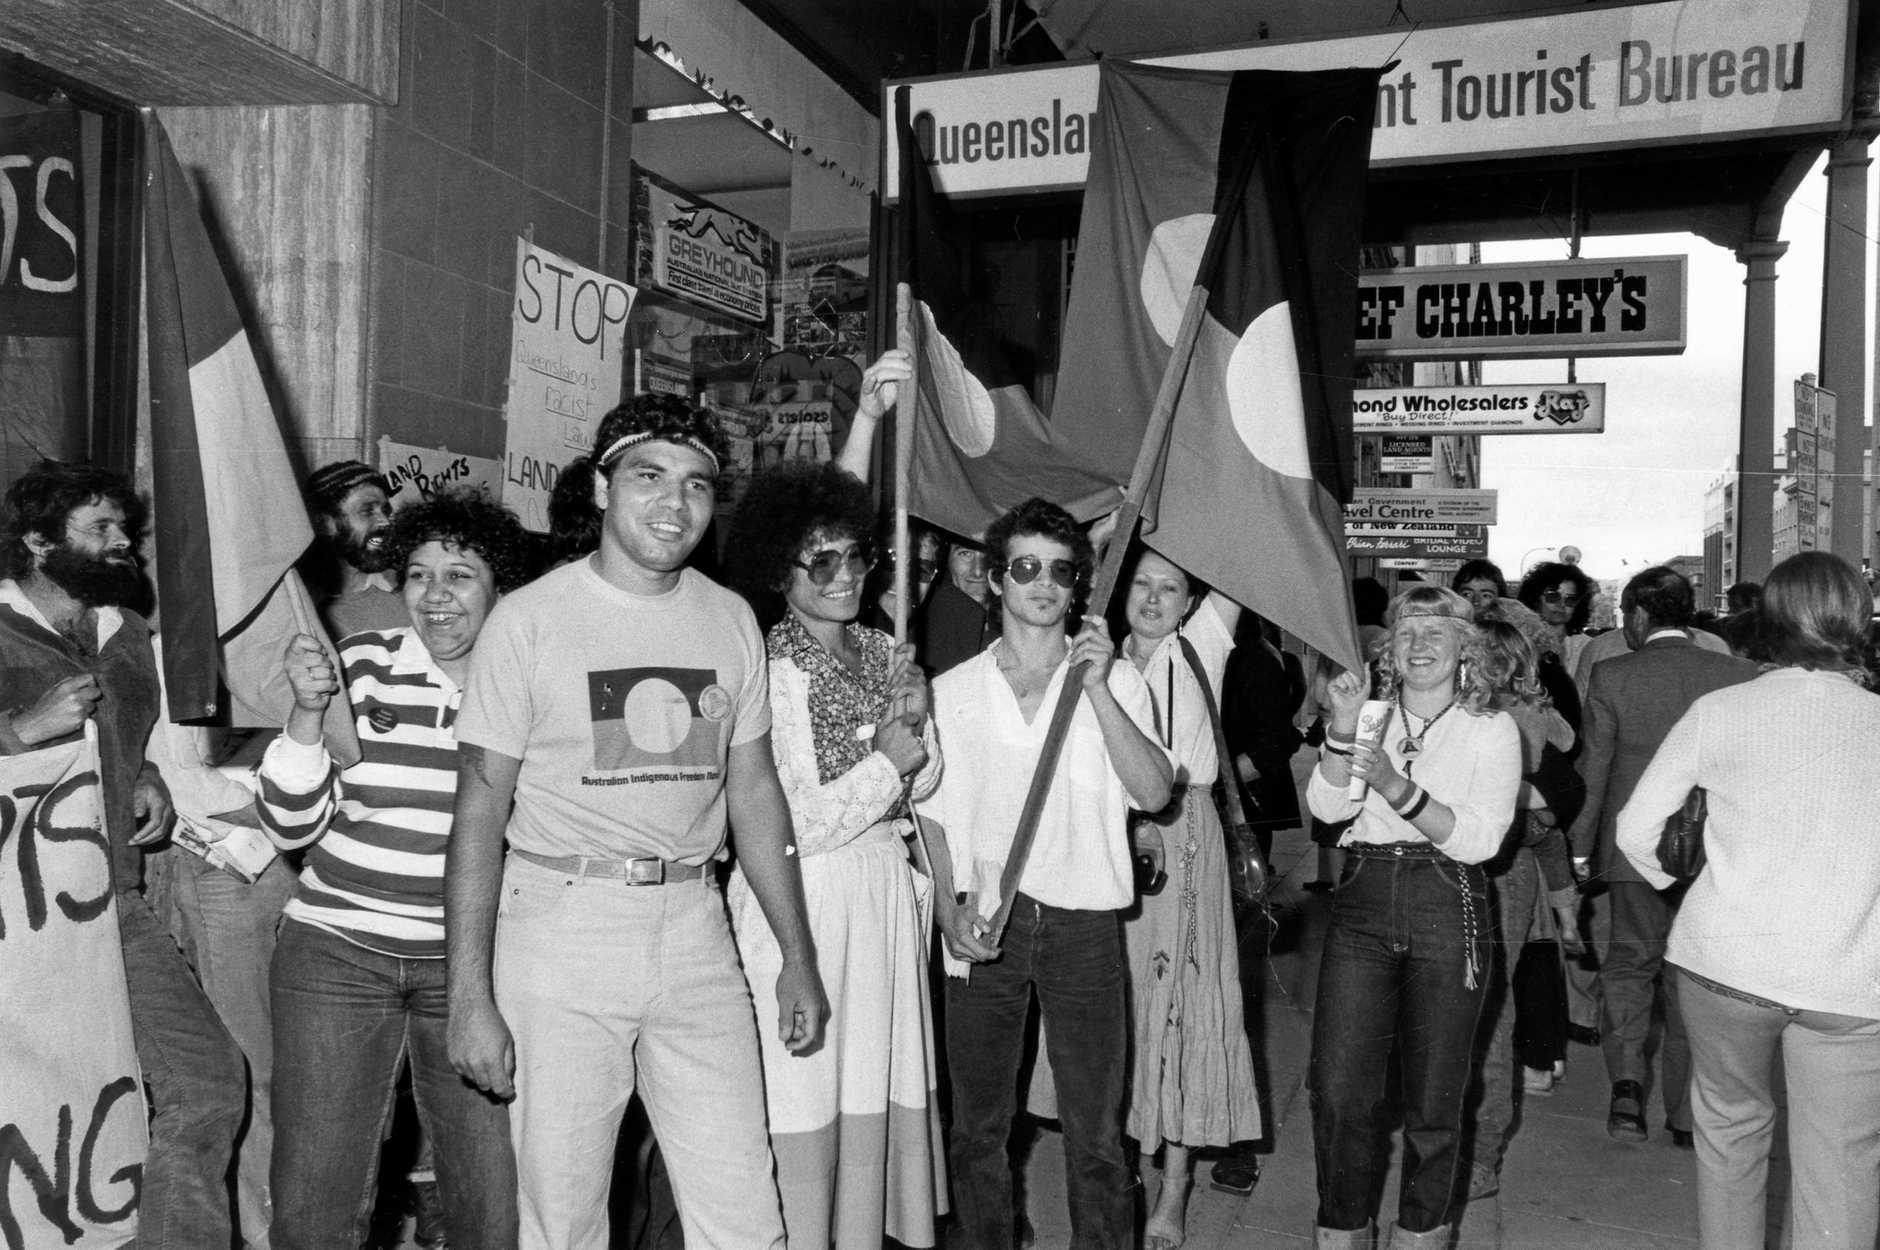 A group of Aboriginal Australians at rally lead by Warren Mundine, chairman of the Justice Before Games support group, demonstrating in front of the Queensland Tourist Bureau office in Grenfell Street, Adelaide 17 Sep 1982.